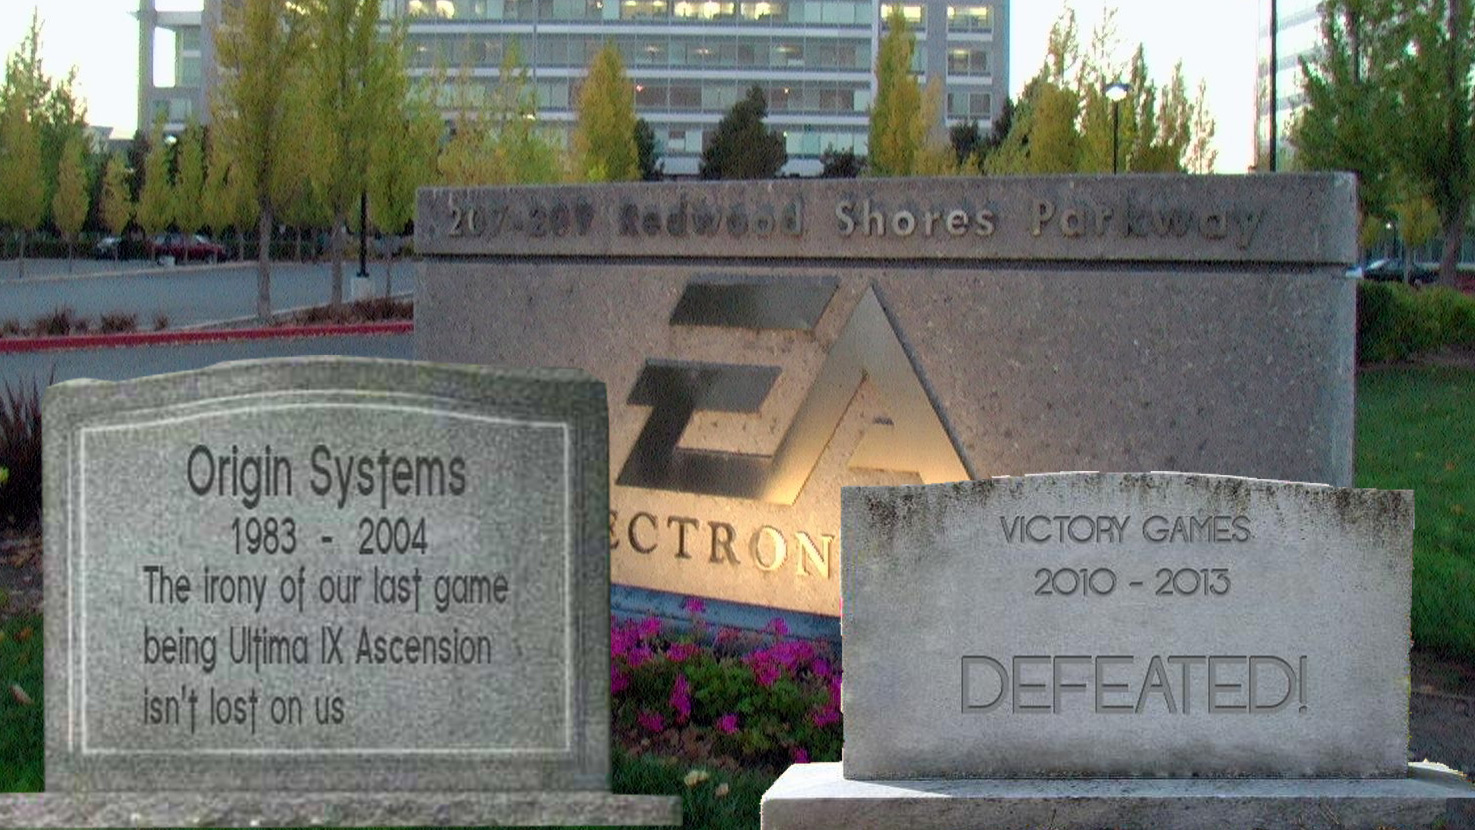 EA Celebrates Halloween By Decorating Offices With Tombstones Of Developers It's Eliminated (Fauxclusive)